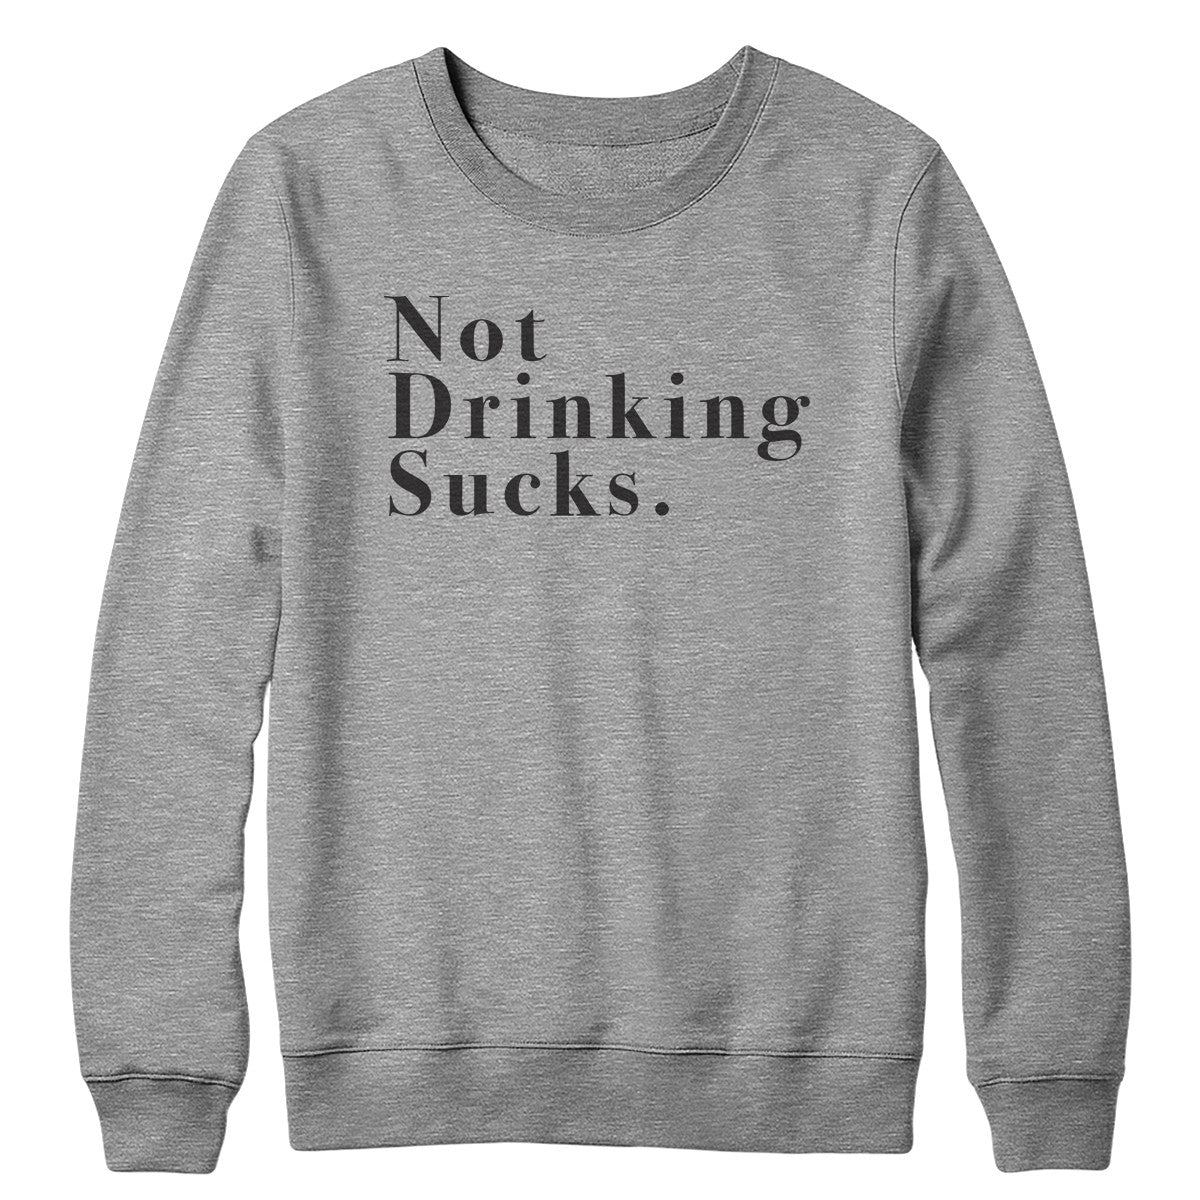 Not Drinking Sucks Crewneck Sweatshirt